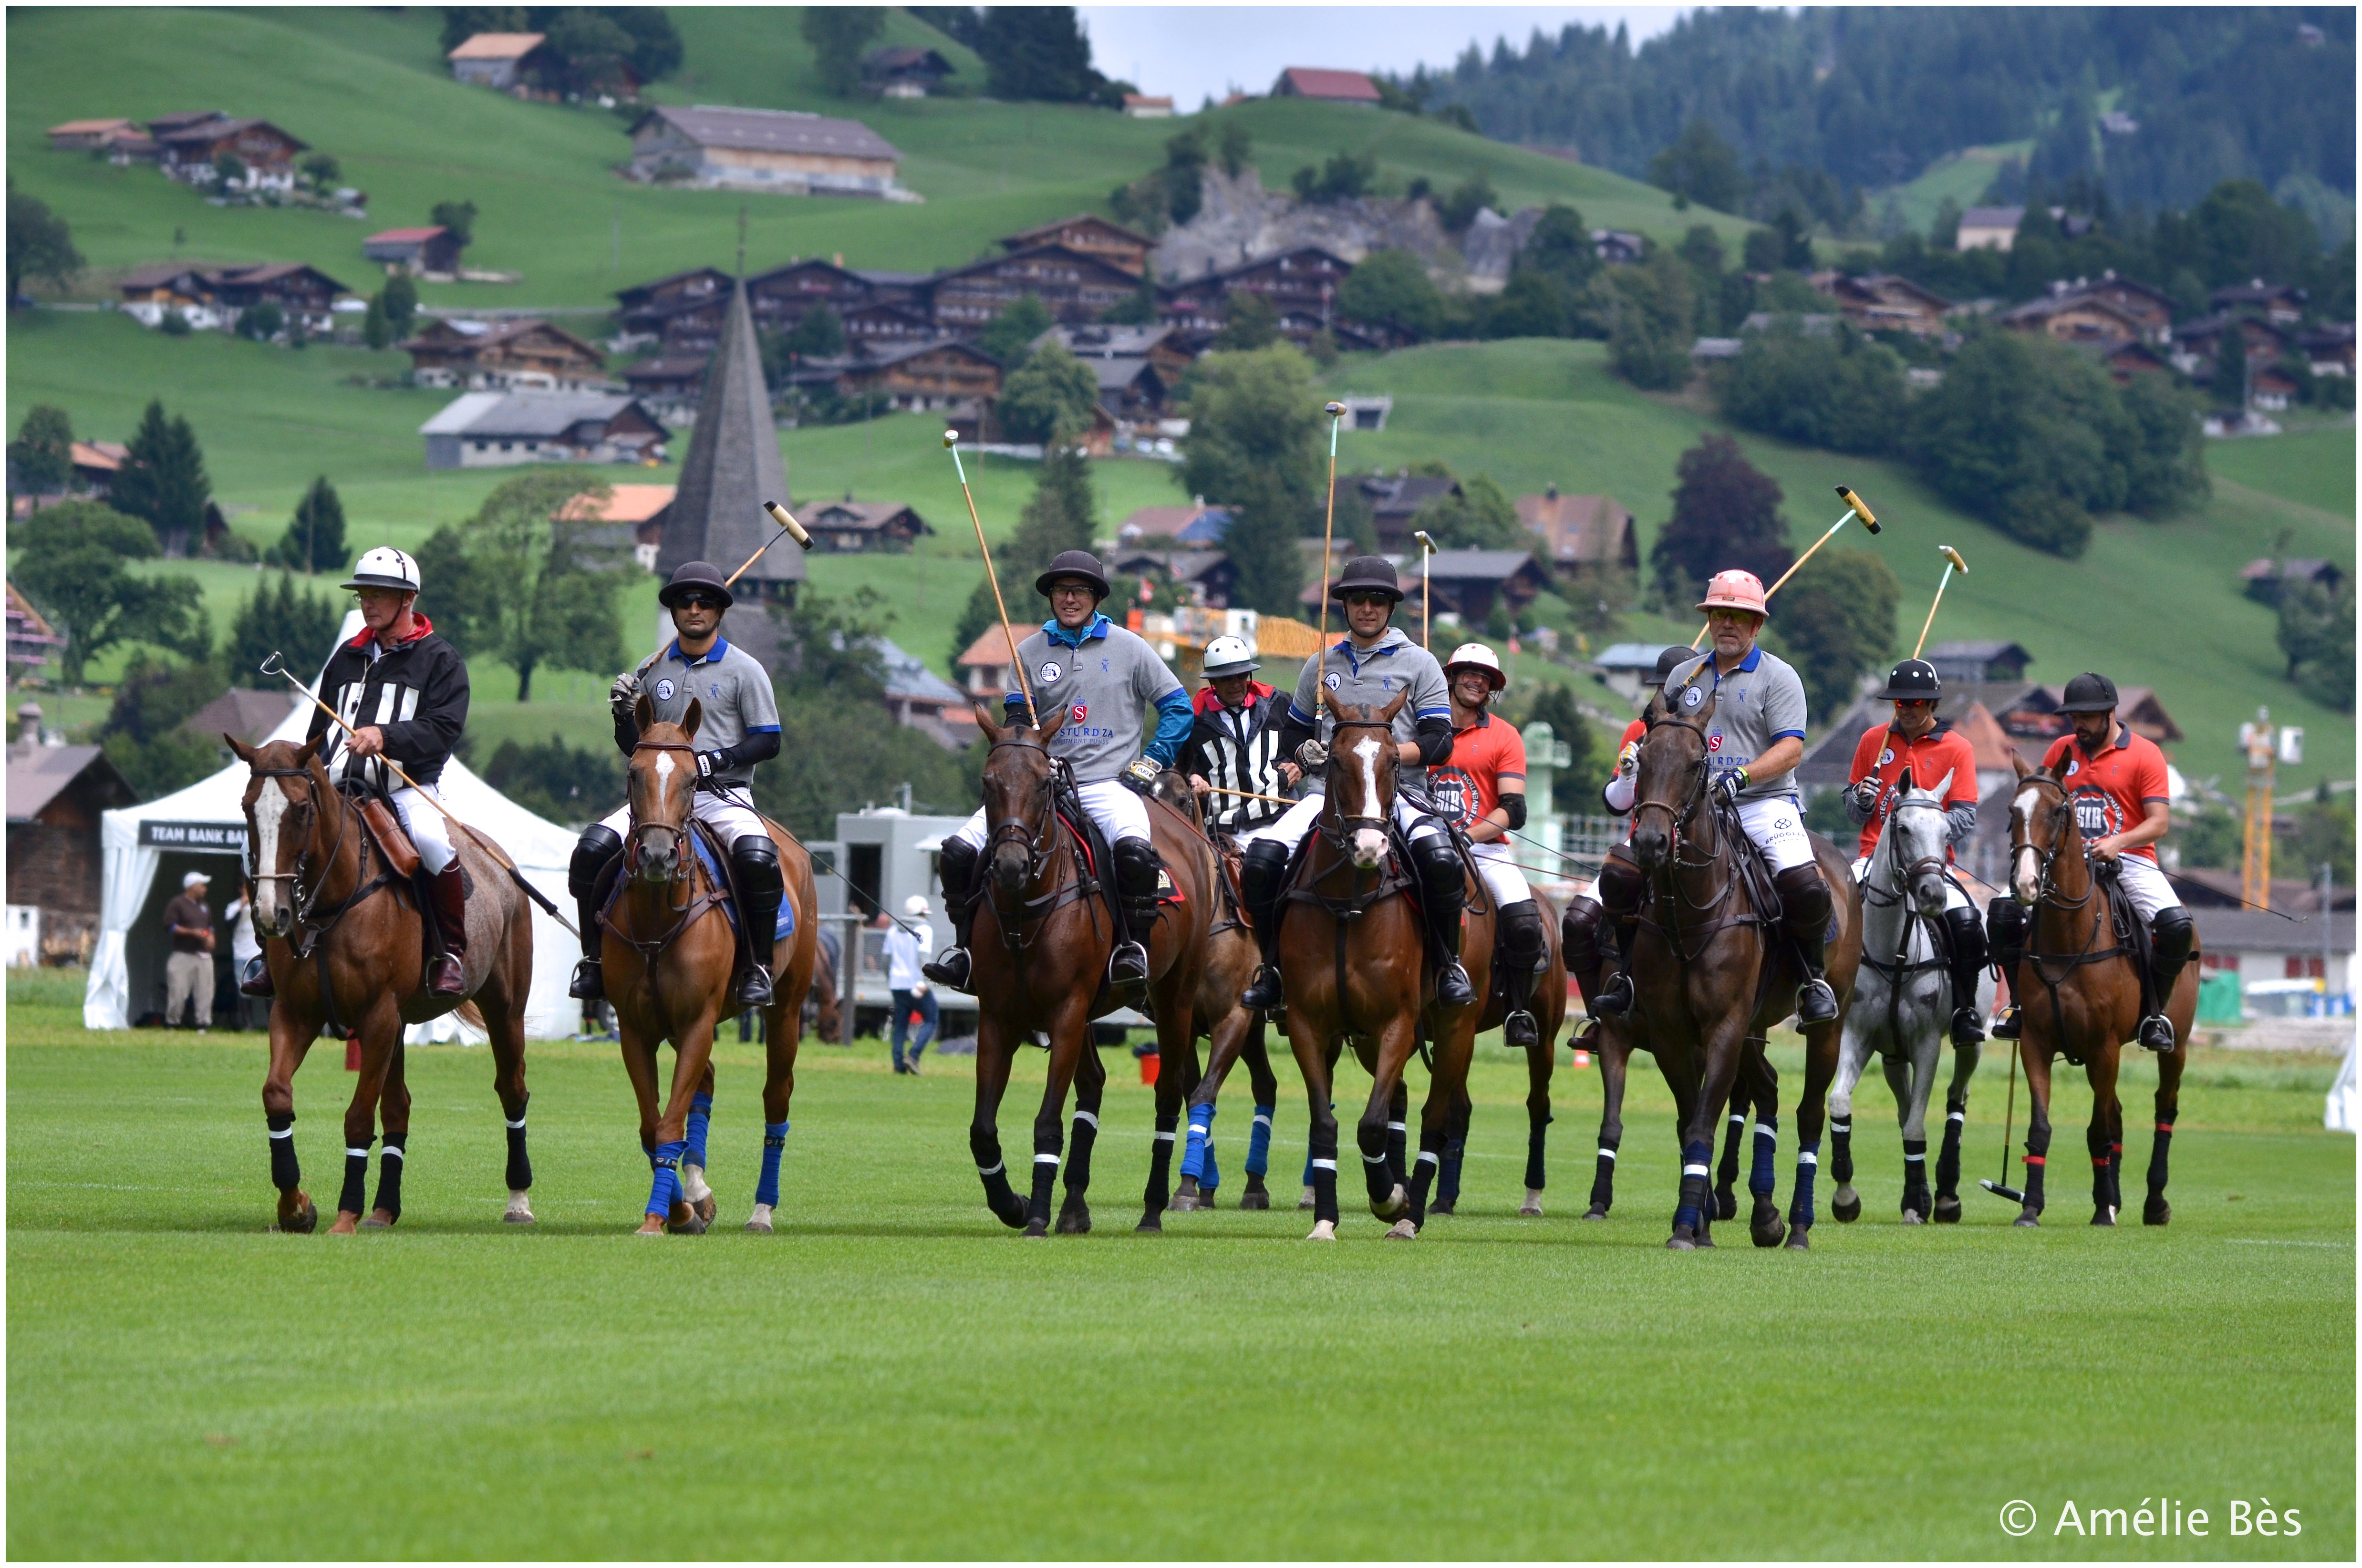 Horse Times Egypt: Equestrian Magazine :News :SAFETY FIRST!   IN A FINAL RESULT DICTATED BY MOTHER NATURE, THE 20th HUBLOT POLO GOLD CUP GSTAAD WAS JOINTLY WON BY TEAM E.I. STURDZA INVESTMENT FUNDS AND TEAM SI.